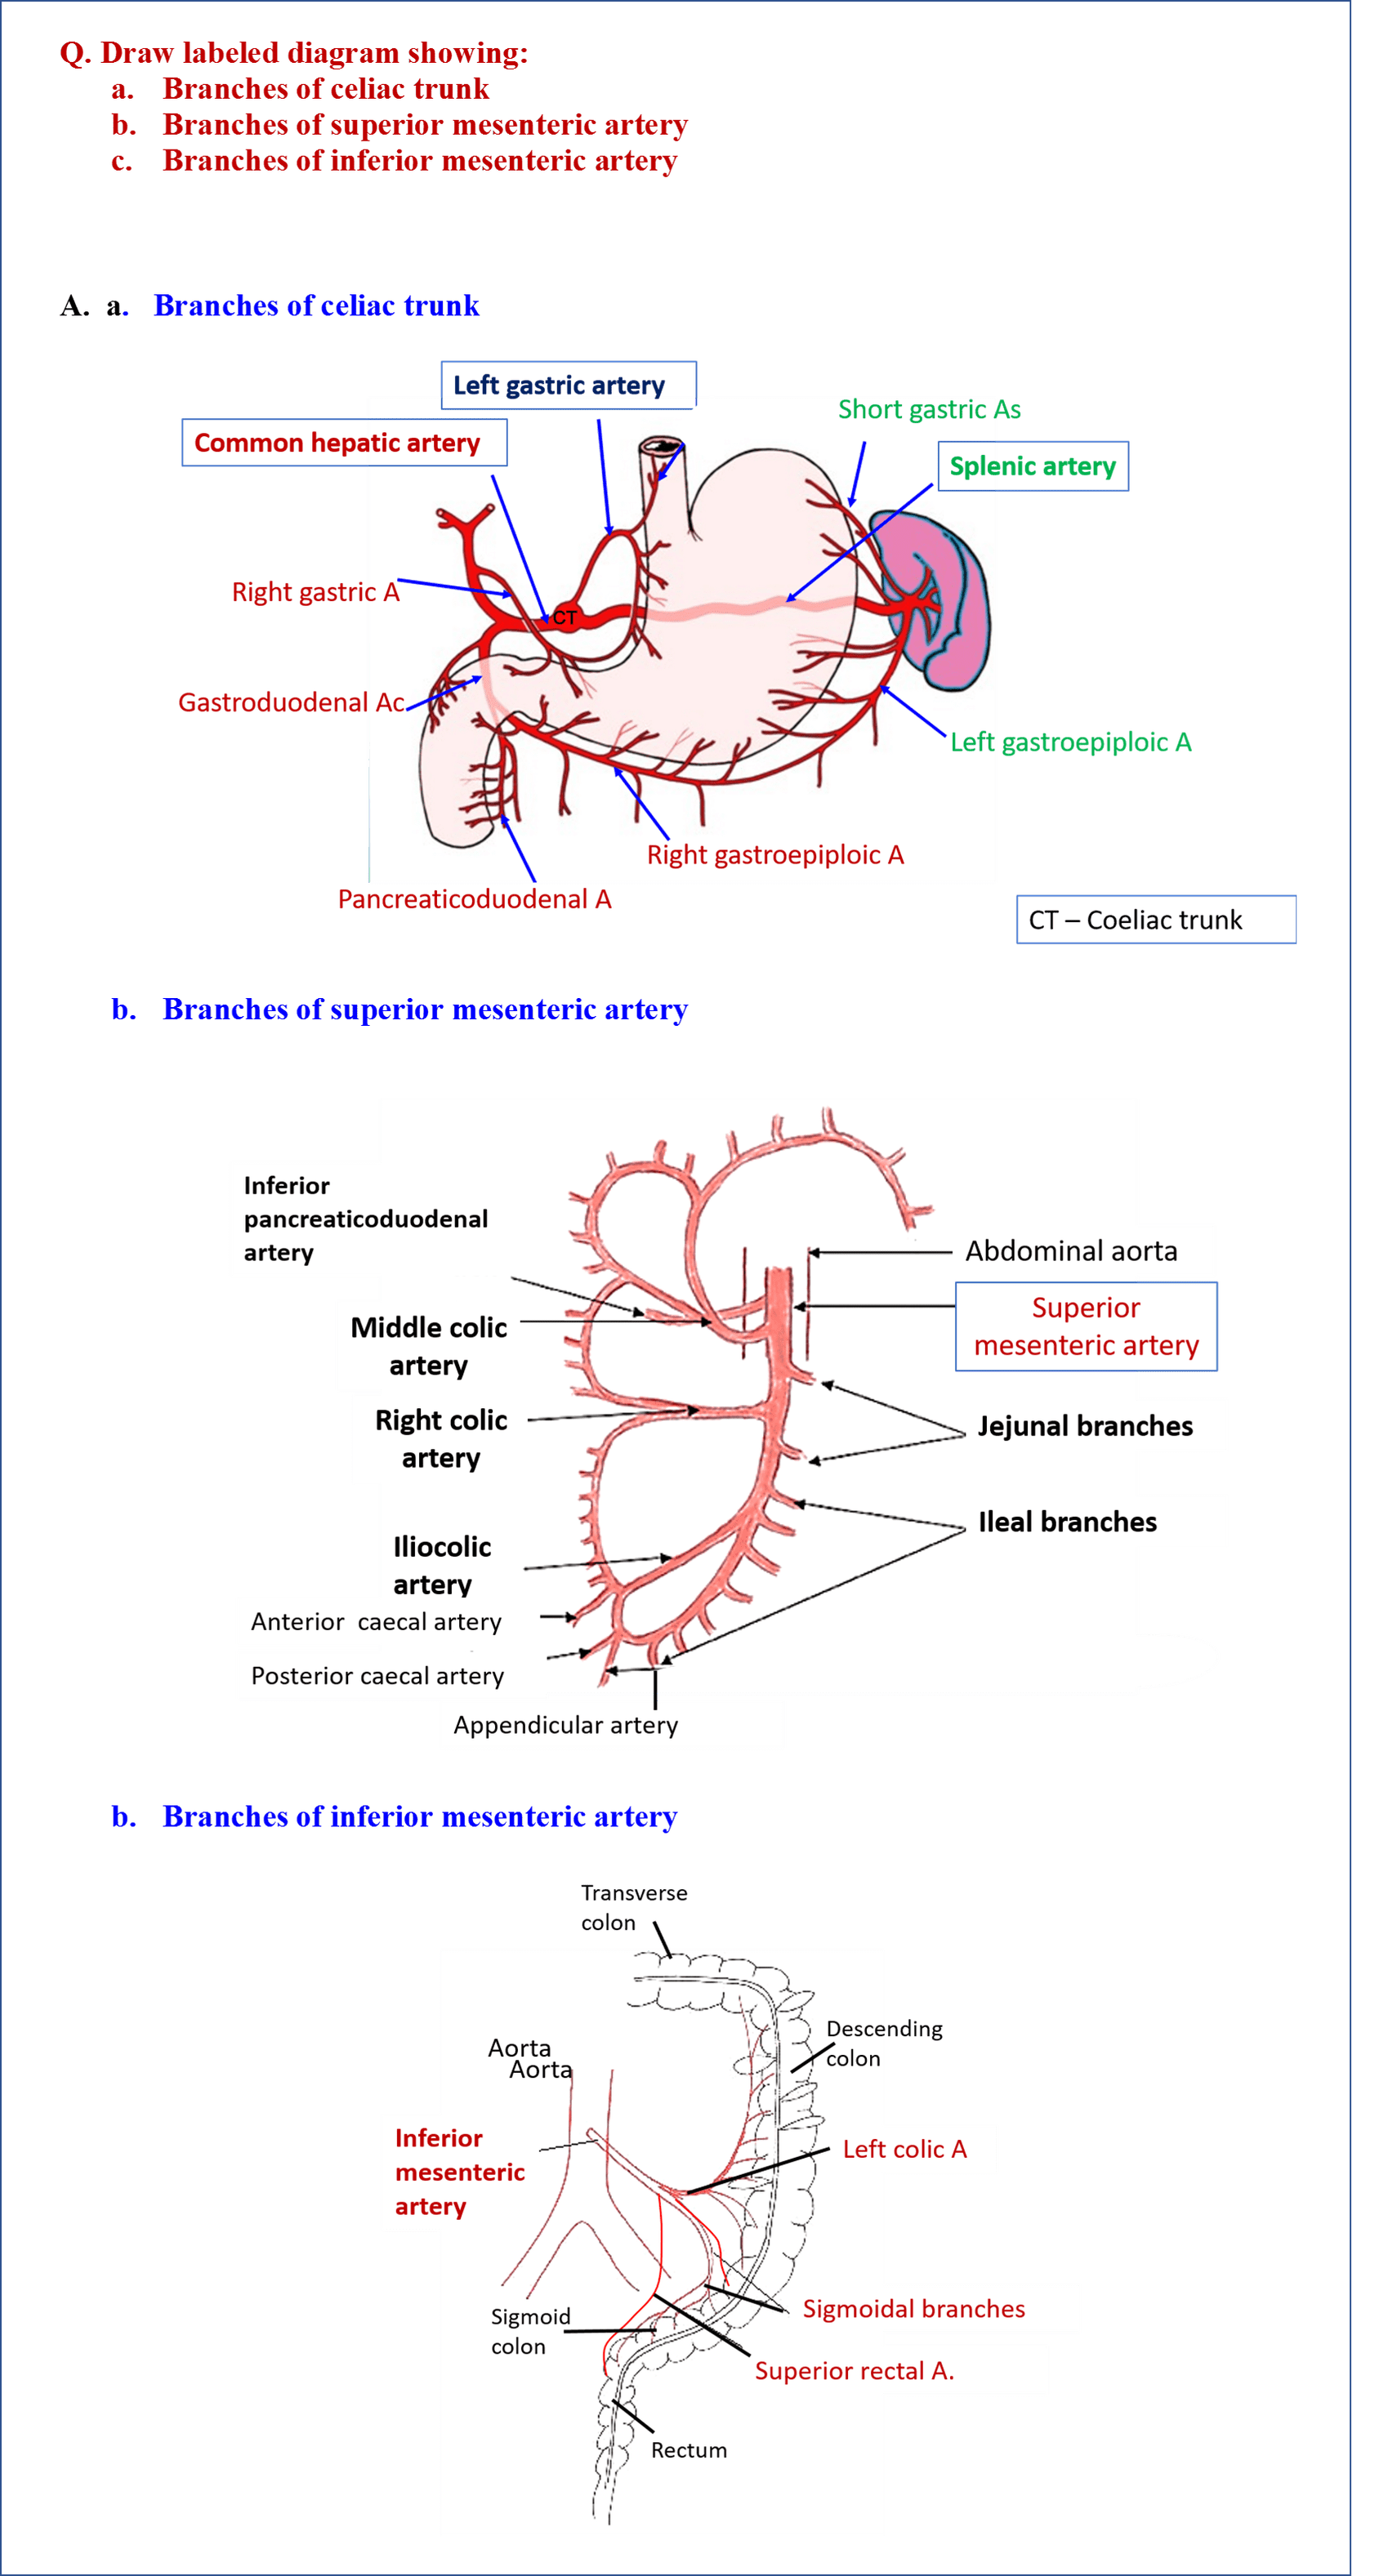 Diagram Showing Branches of Coeliac trunk, Superior and Inferior Mesenteric Arteries